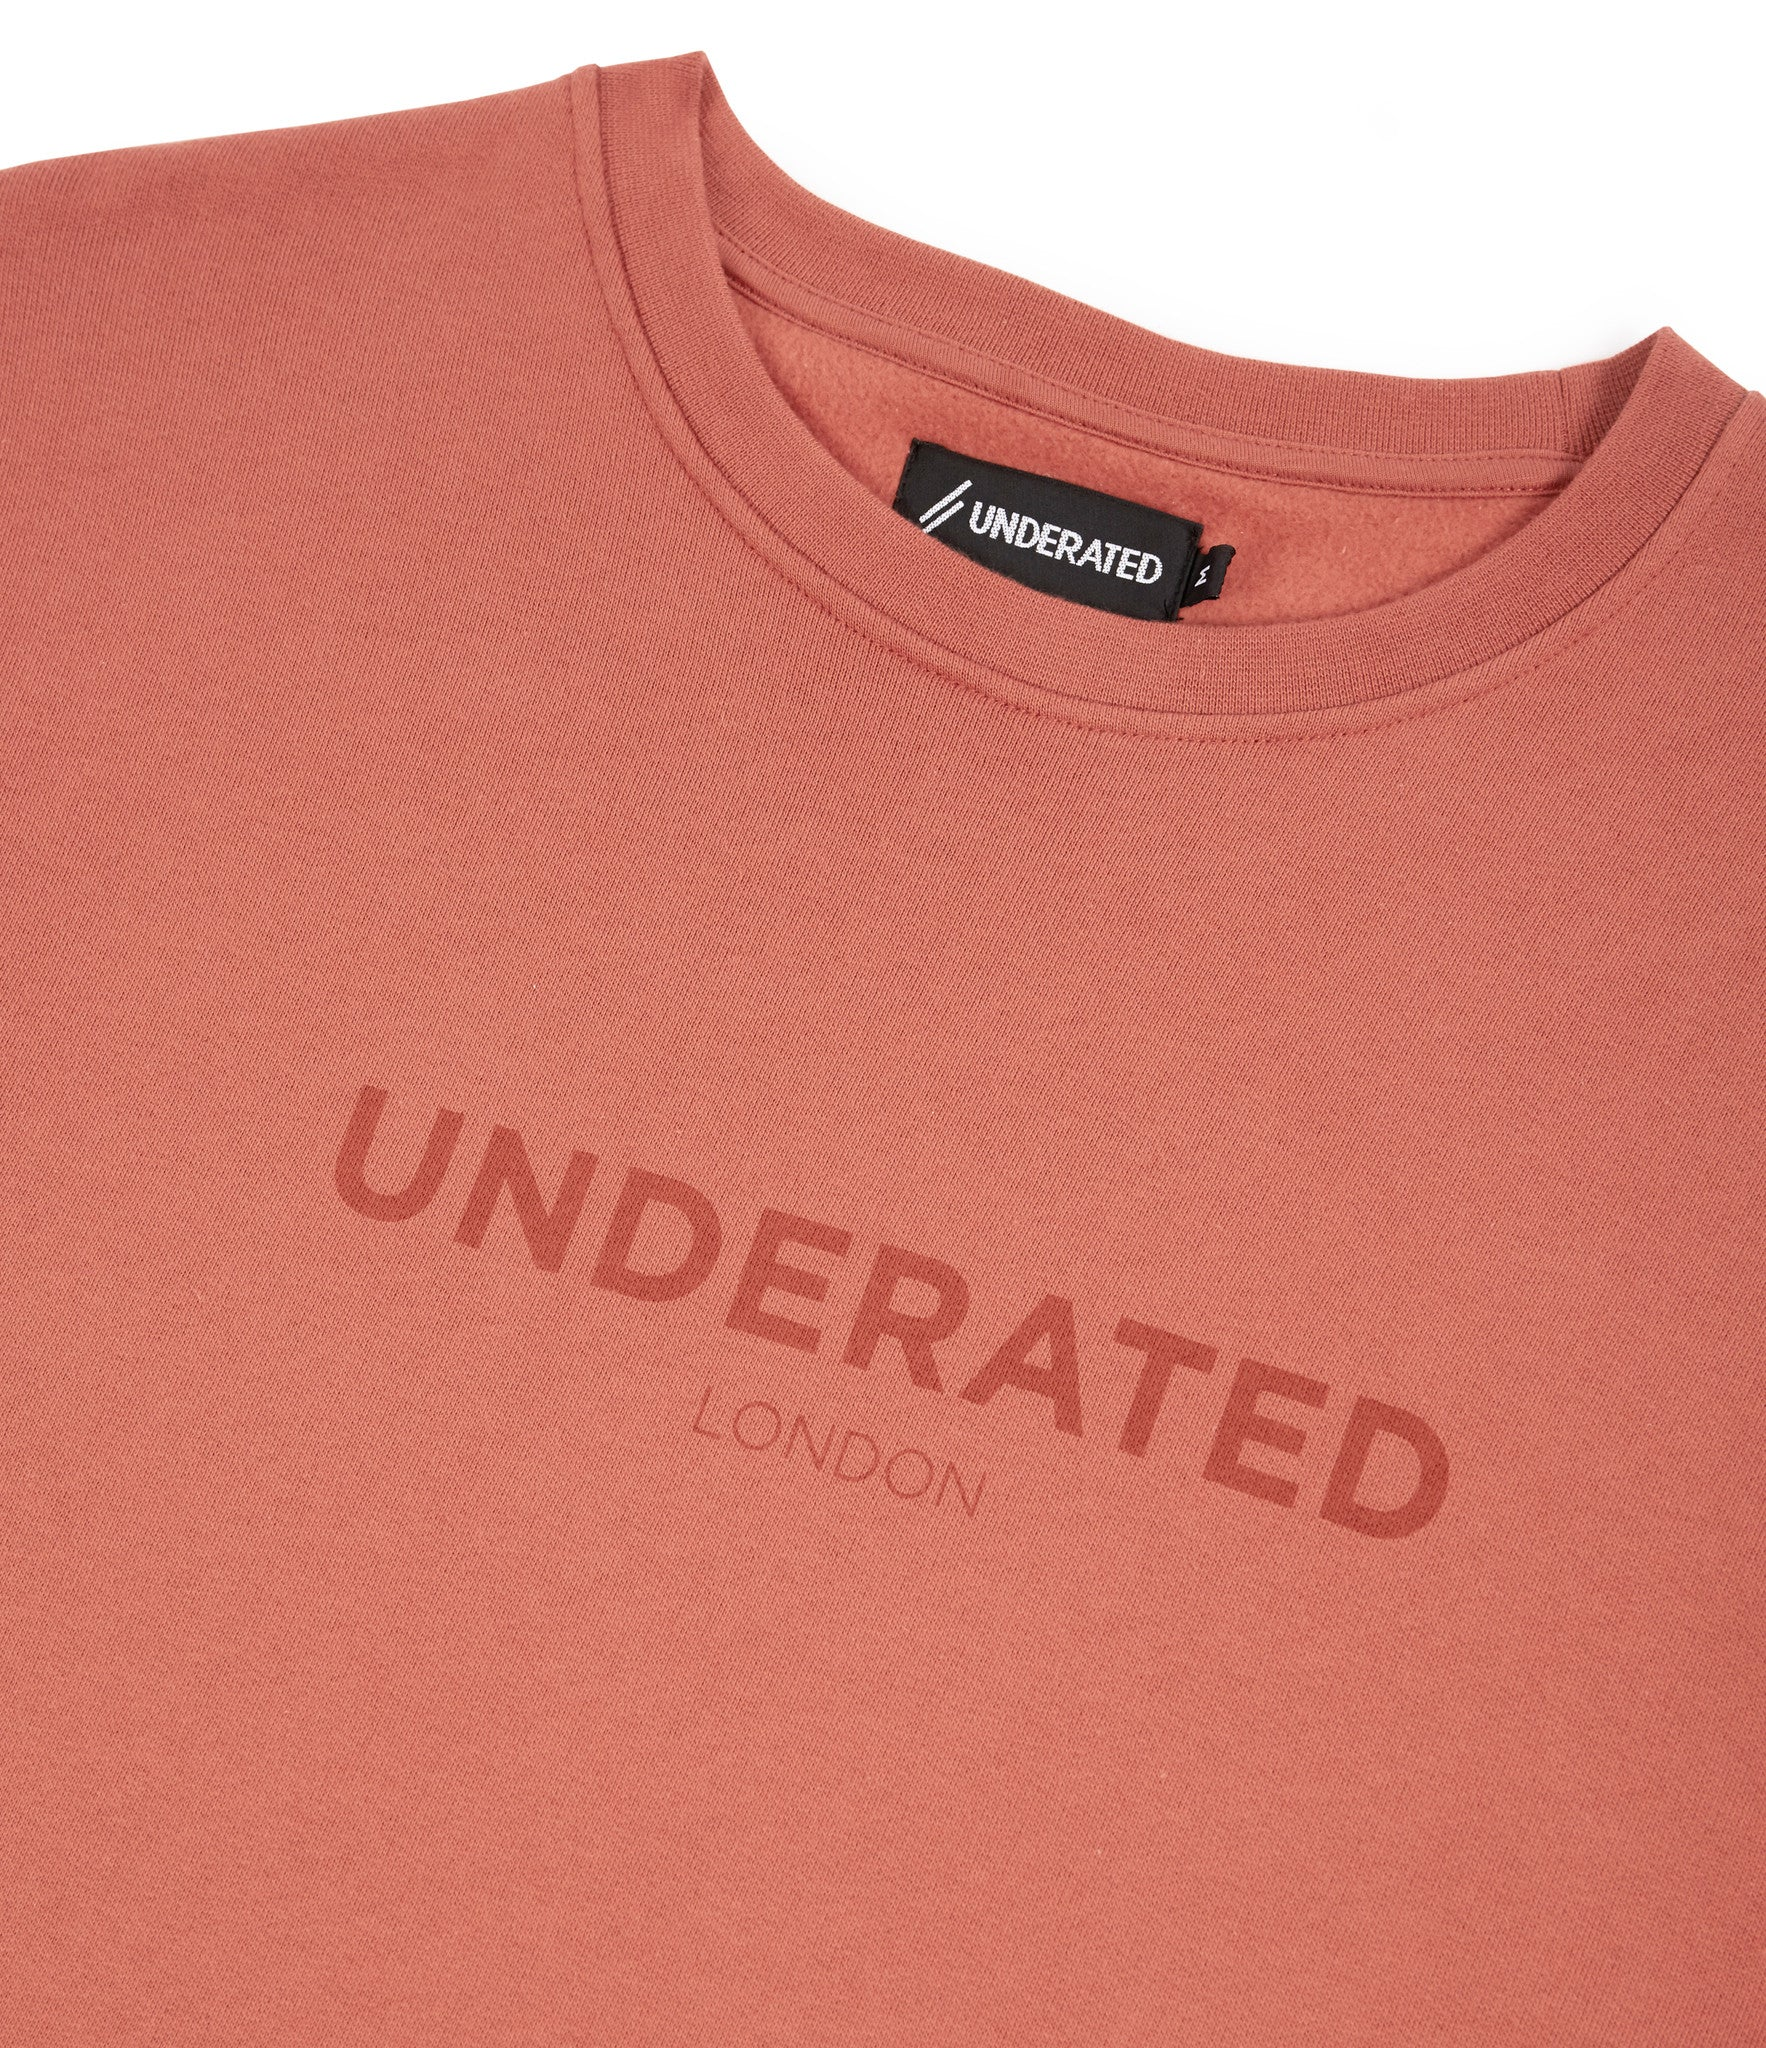 SW400 Tonal Print Sweatshirt - Rust - underated london - underatedco - 3